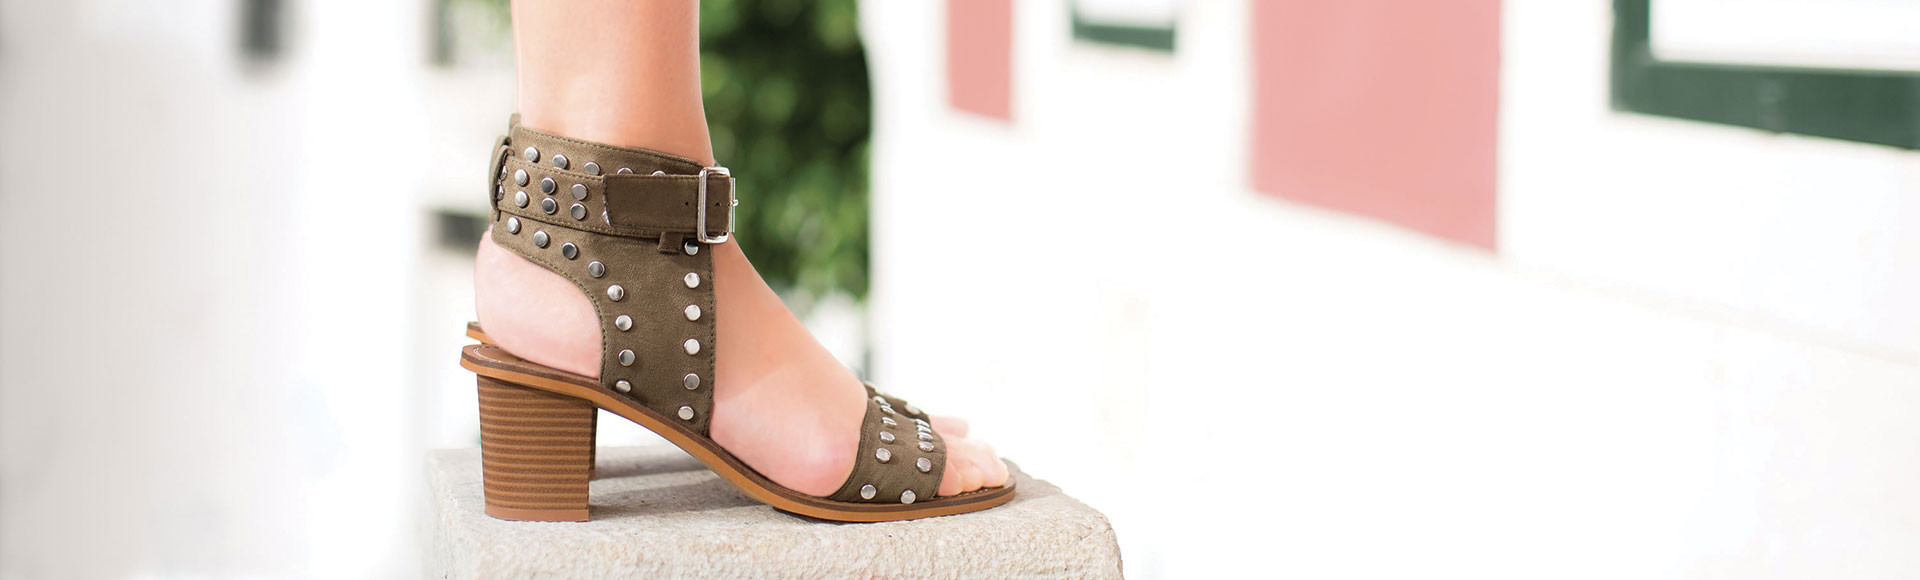 Khaki heeled sandals with studs and wide strap